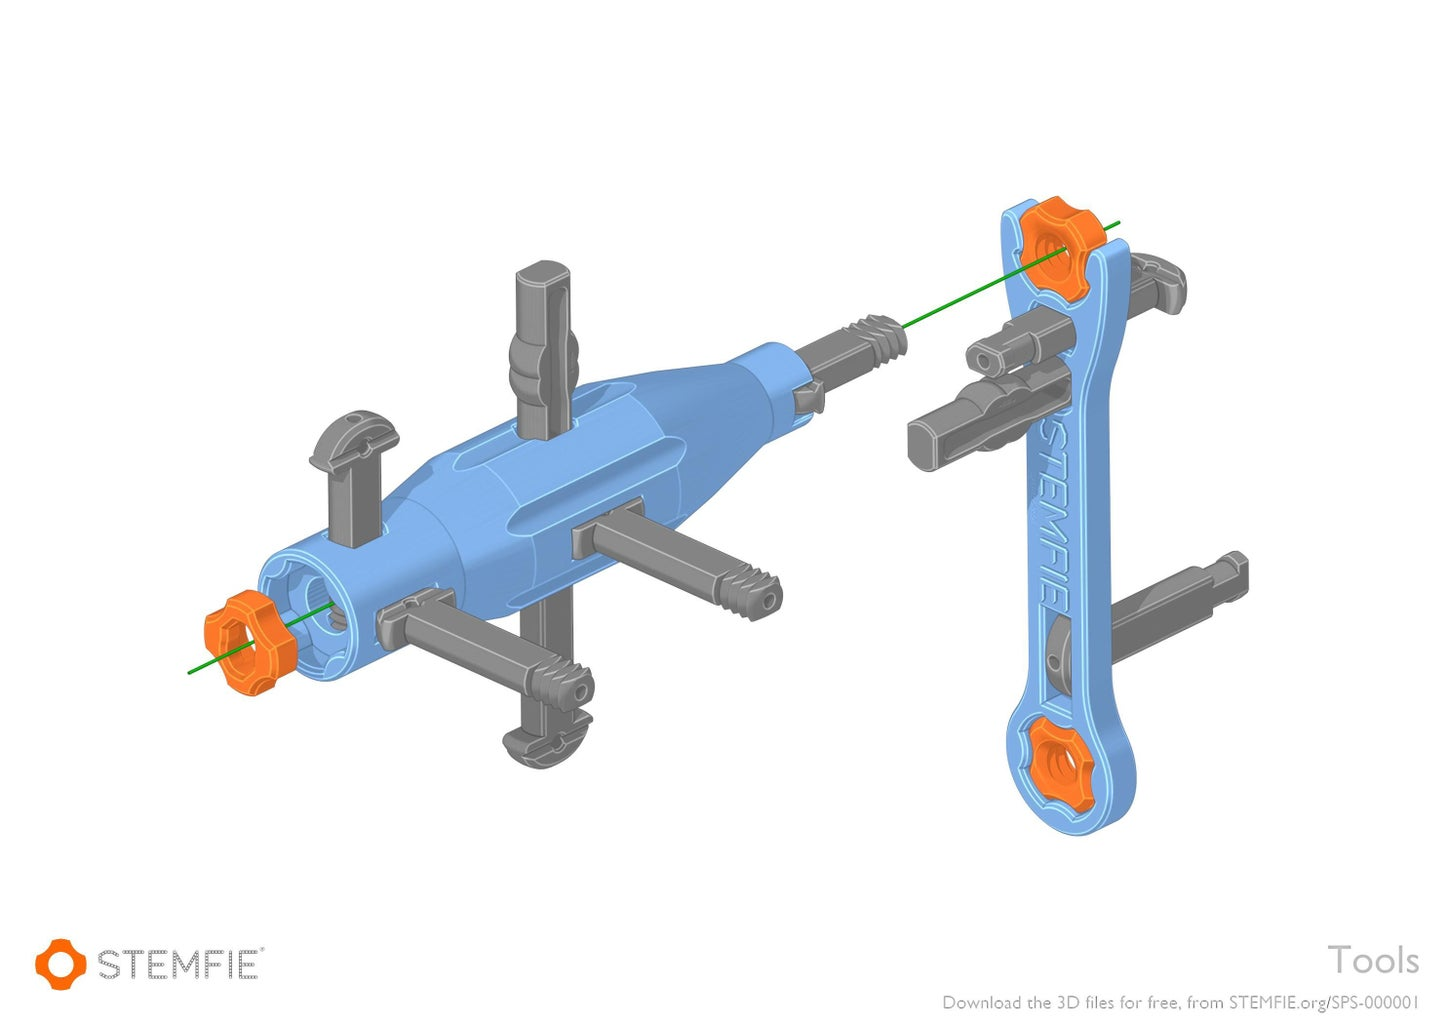 Download and 3D-print All Parts